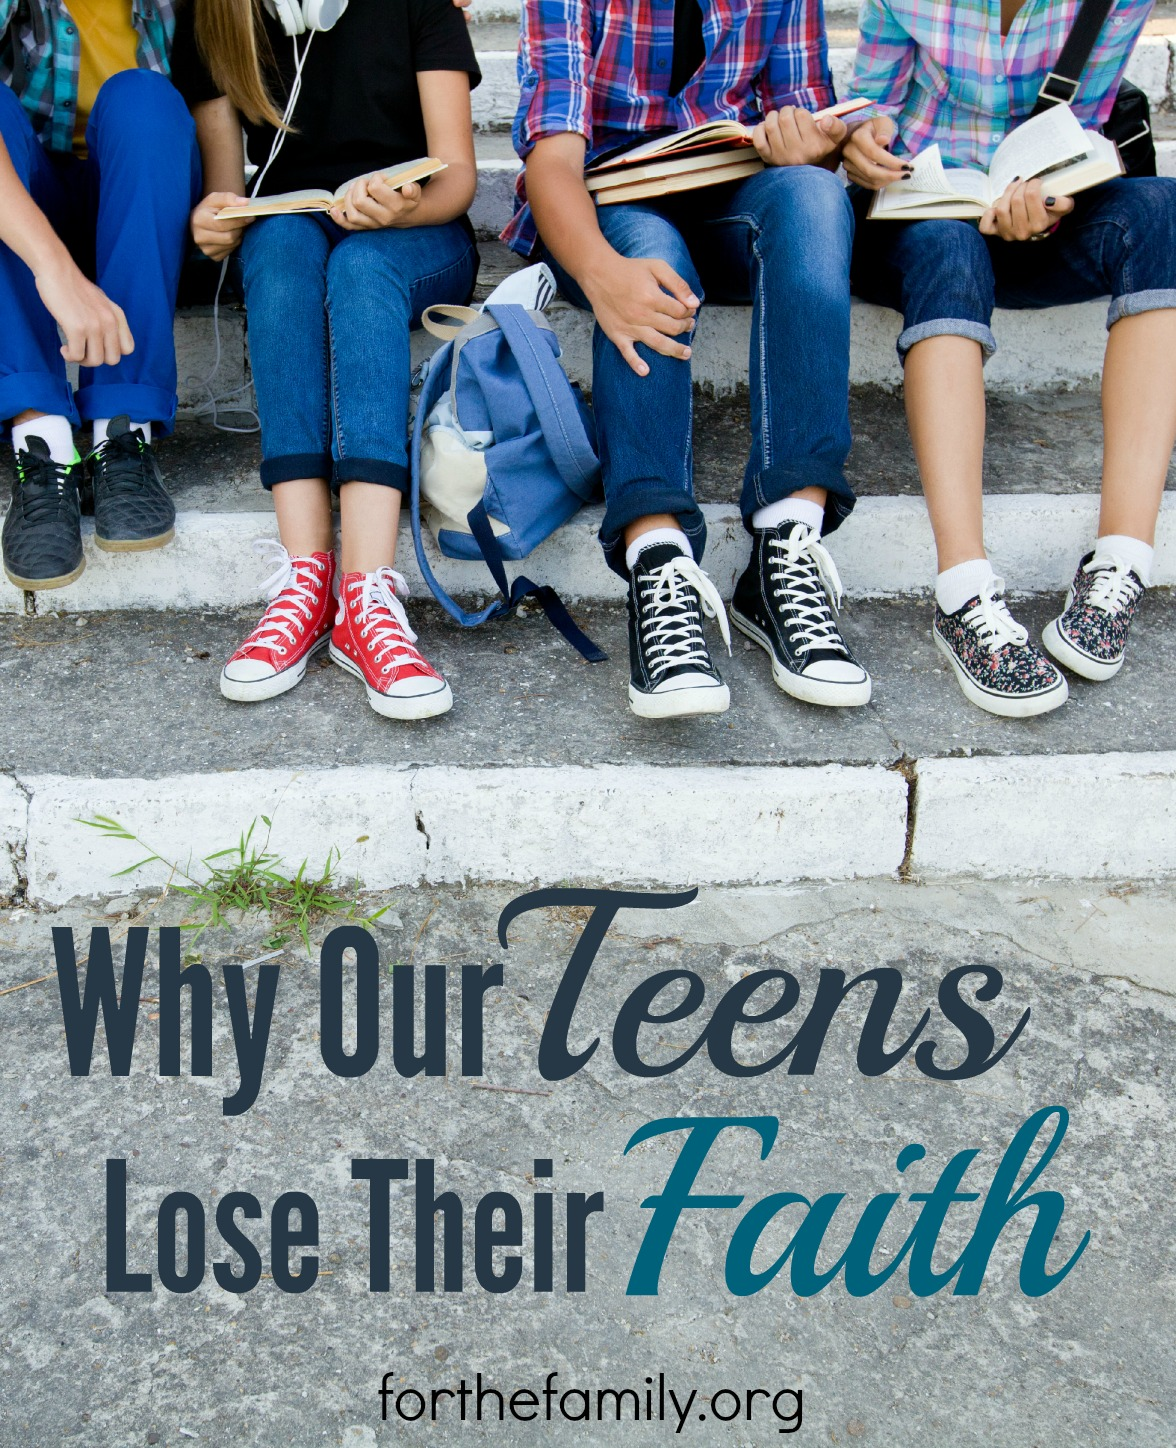 Youth Pastor Church Nite: Why Our Teens Lose Their Faith